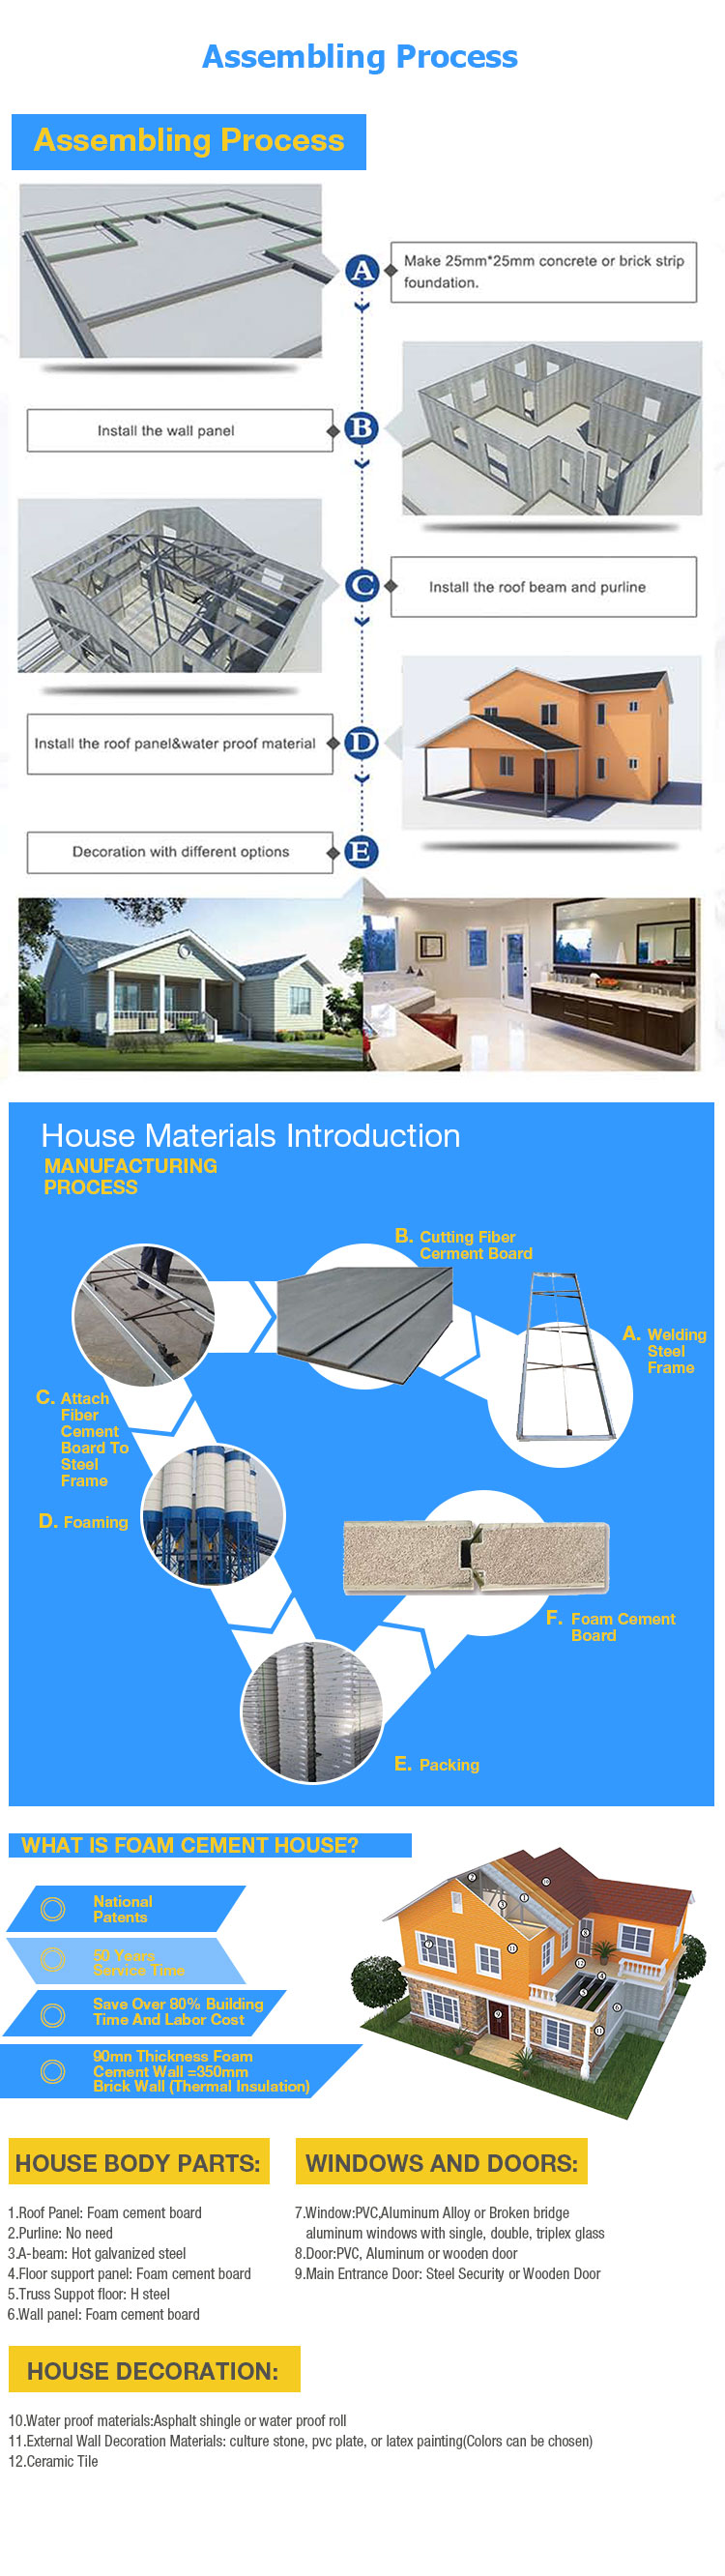 2 Storey Cheap And New Design Prefab Guest Beach House Poland Made Electrical Plan Company Profile 3 Interior Decoration